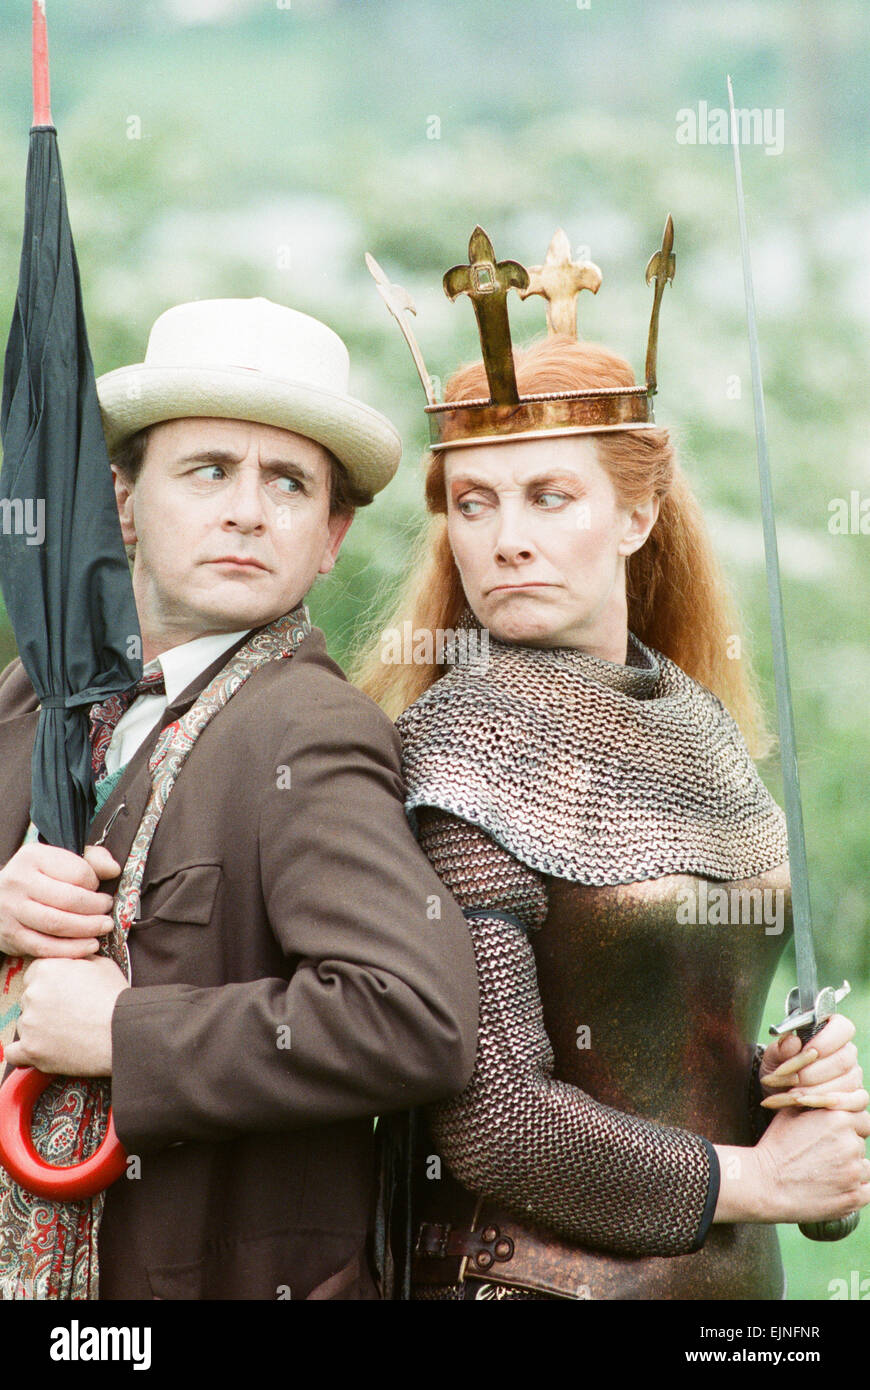 Sylvester McCoy as the Doctor with Jean Marsh as Morgaine whilst on location filming for the Dr Who story Battlefield. - Stock Image